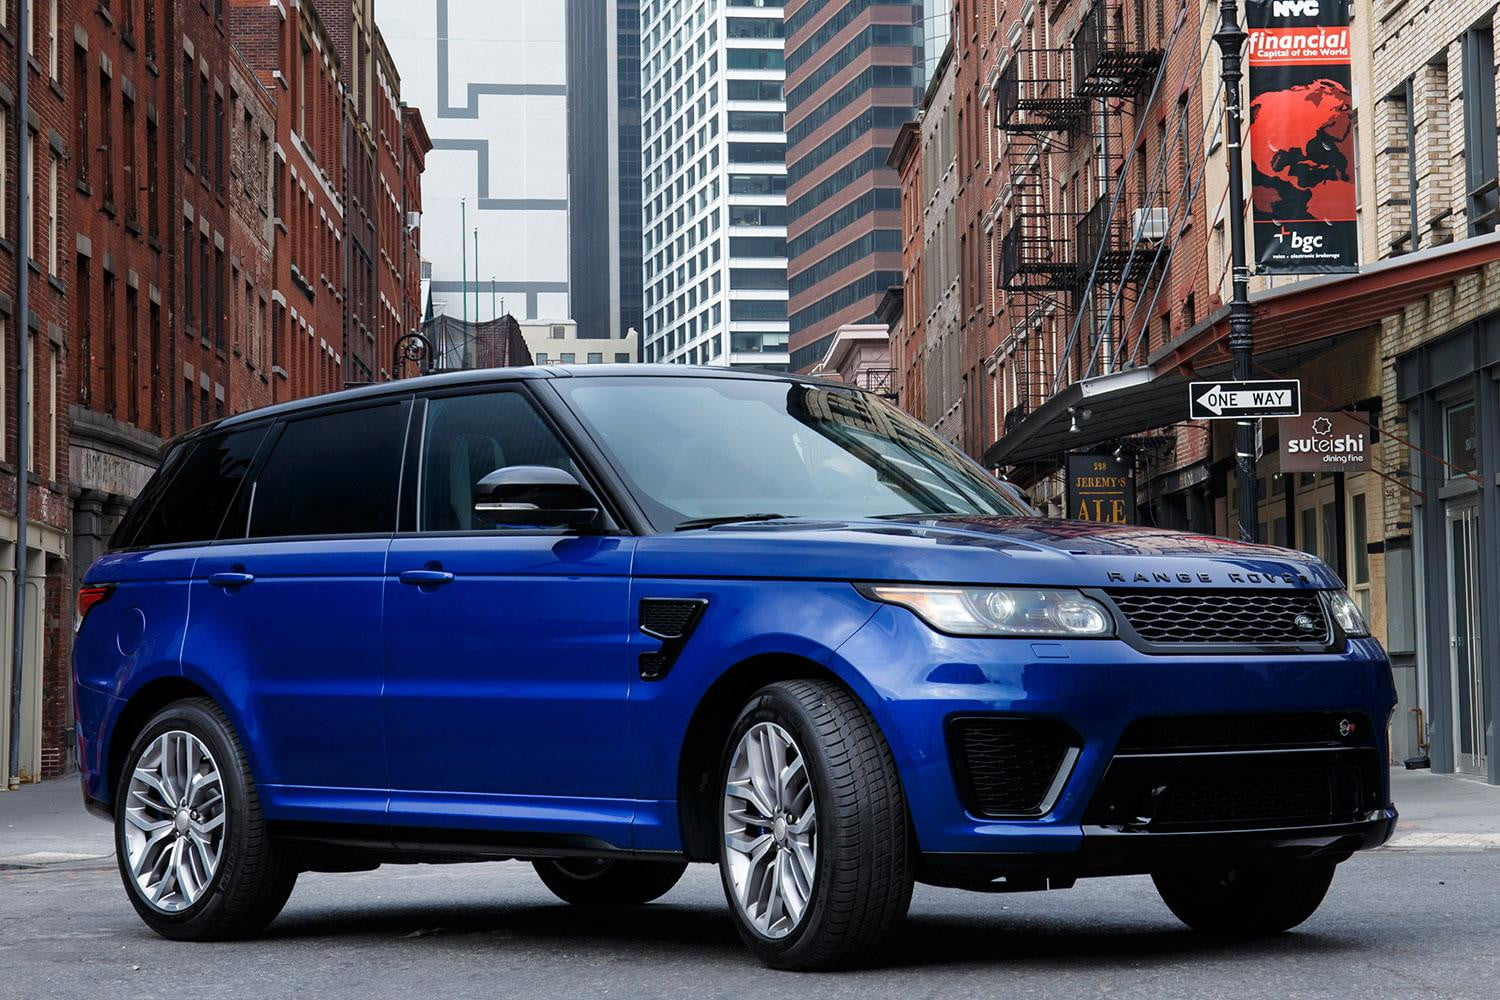 2016 land rover range rover sport svr first drive review. Black Bedroom Furniture Sets. Home Design Ideas